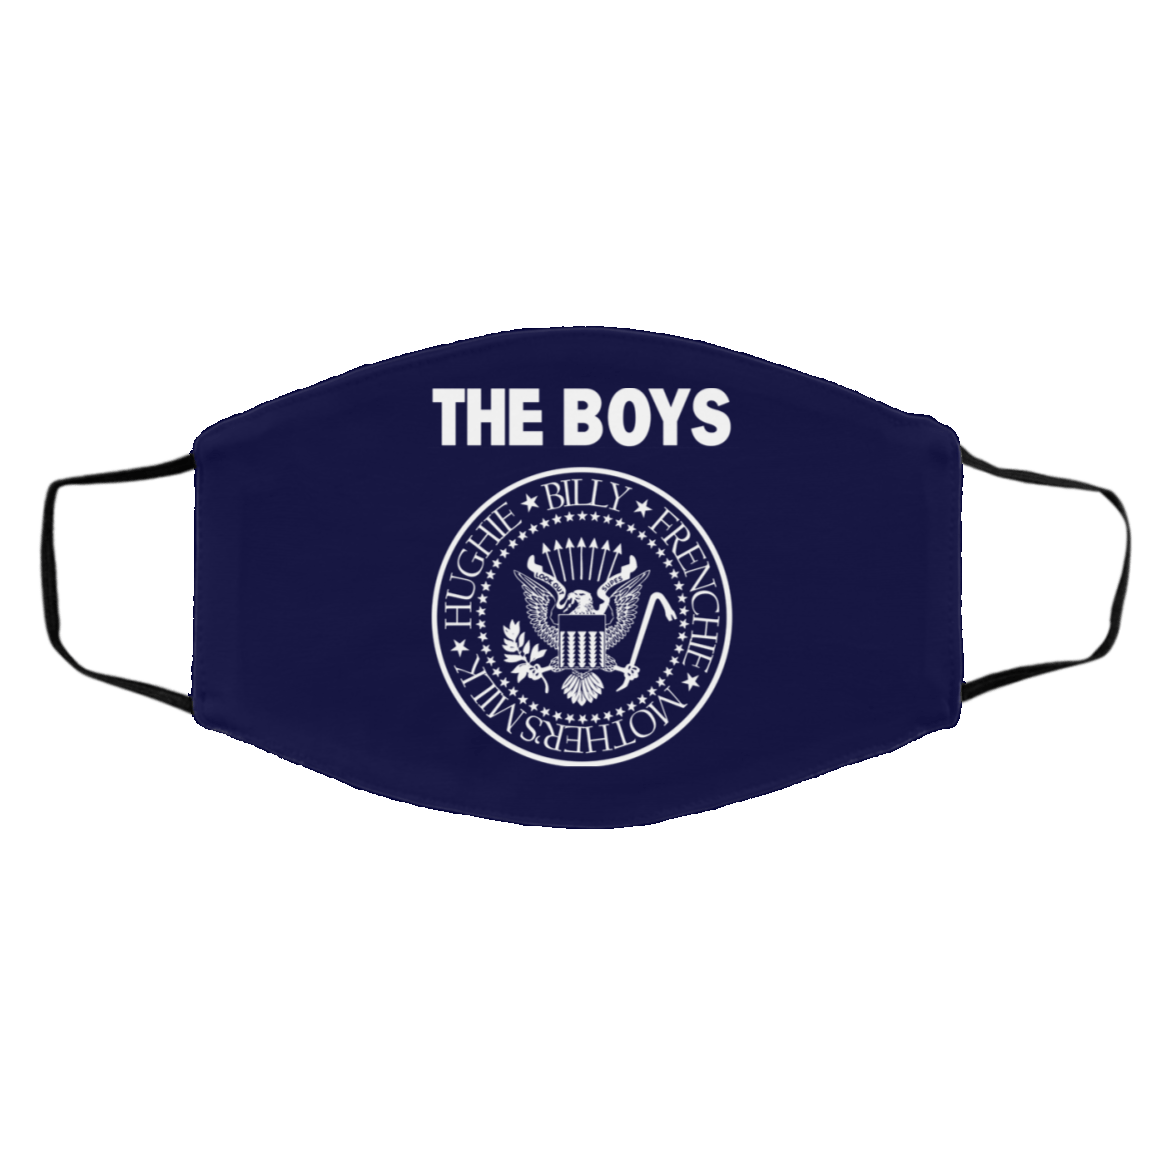 The Boys Hughie Billy Frenchie Mother's Milk Face Mask 1274-13182-89726784-59070 - Tee Ript